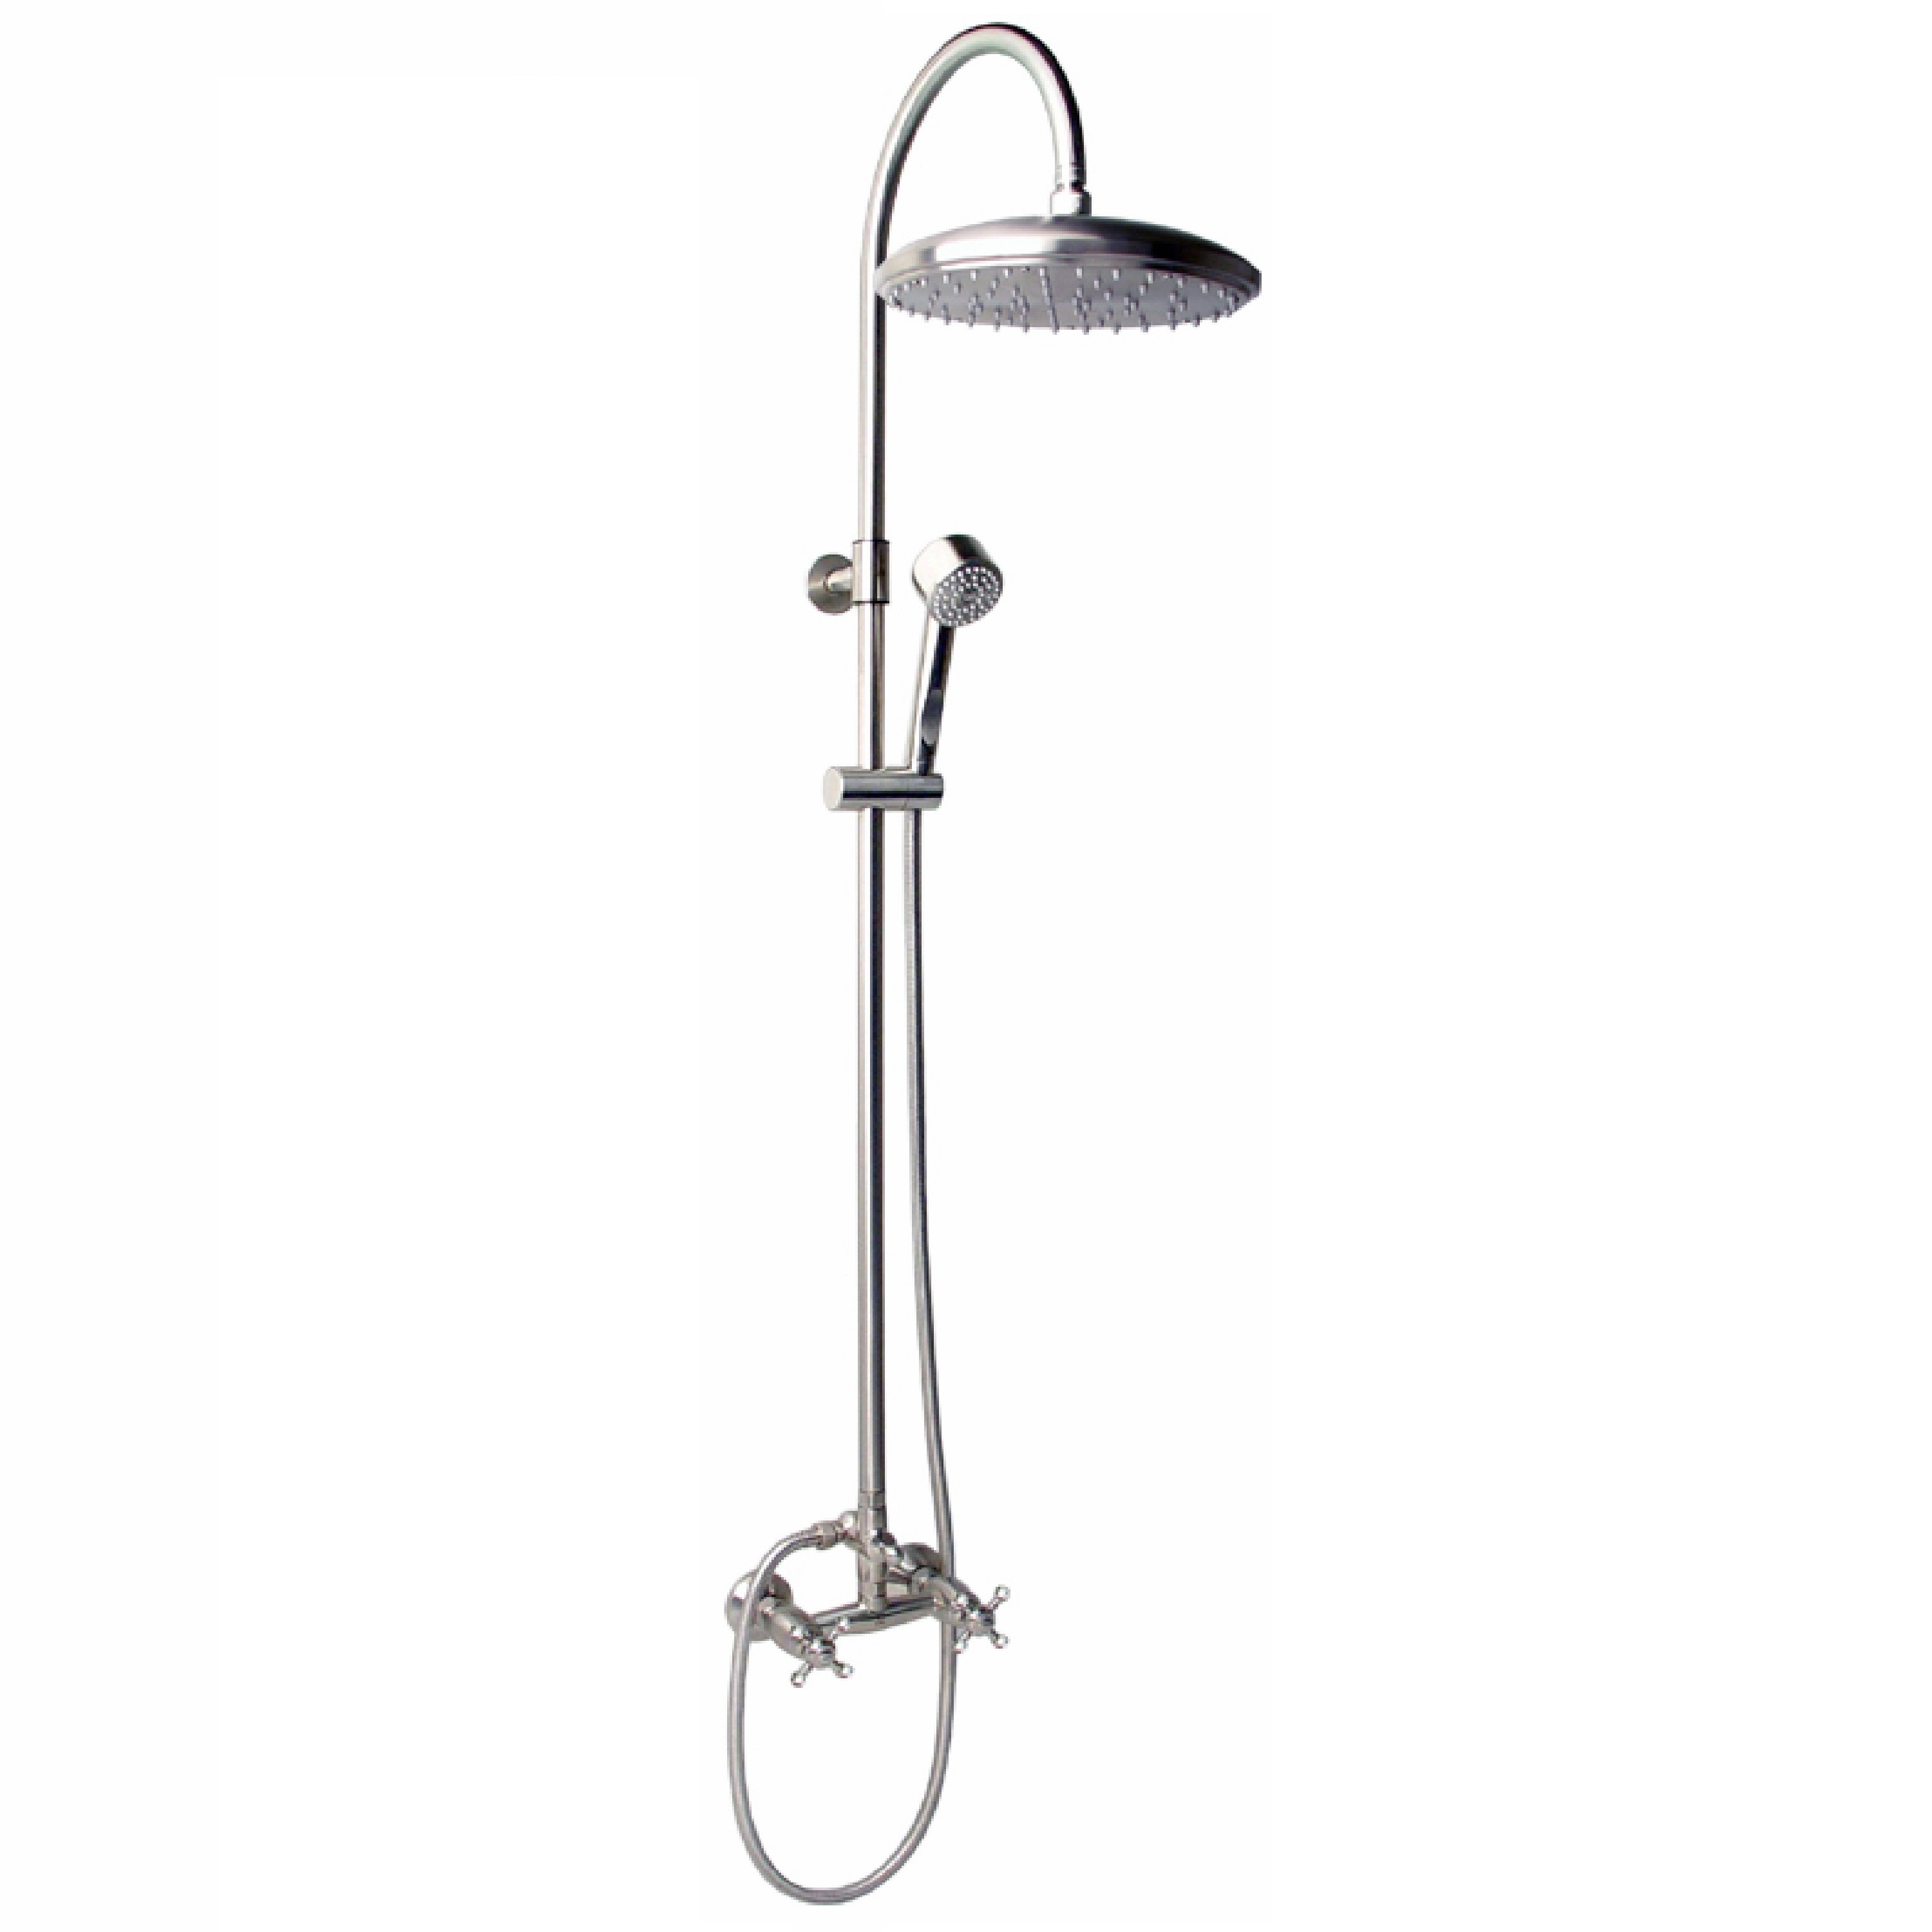 Outdoor Shower Company CAP-113DDS-12 Wall Mount Hot & Cold Shower